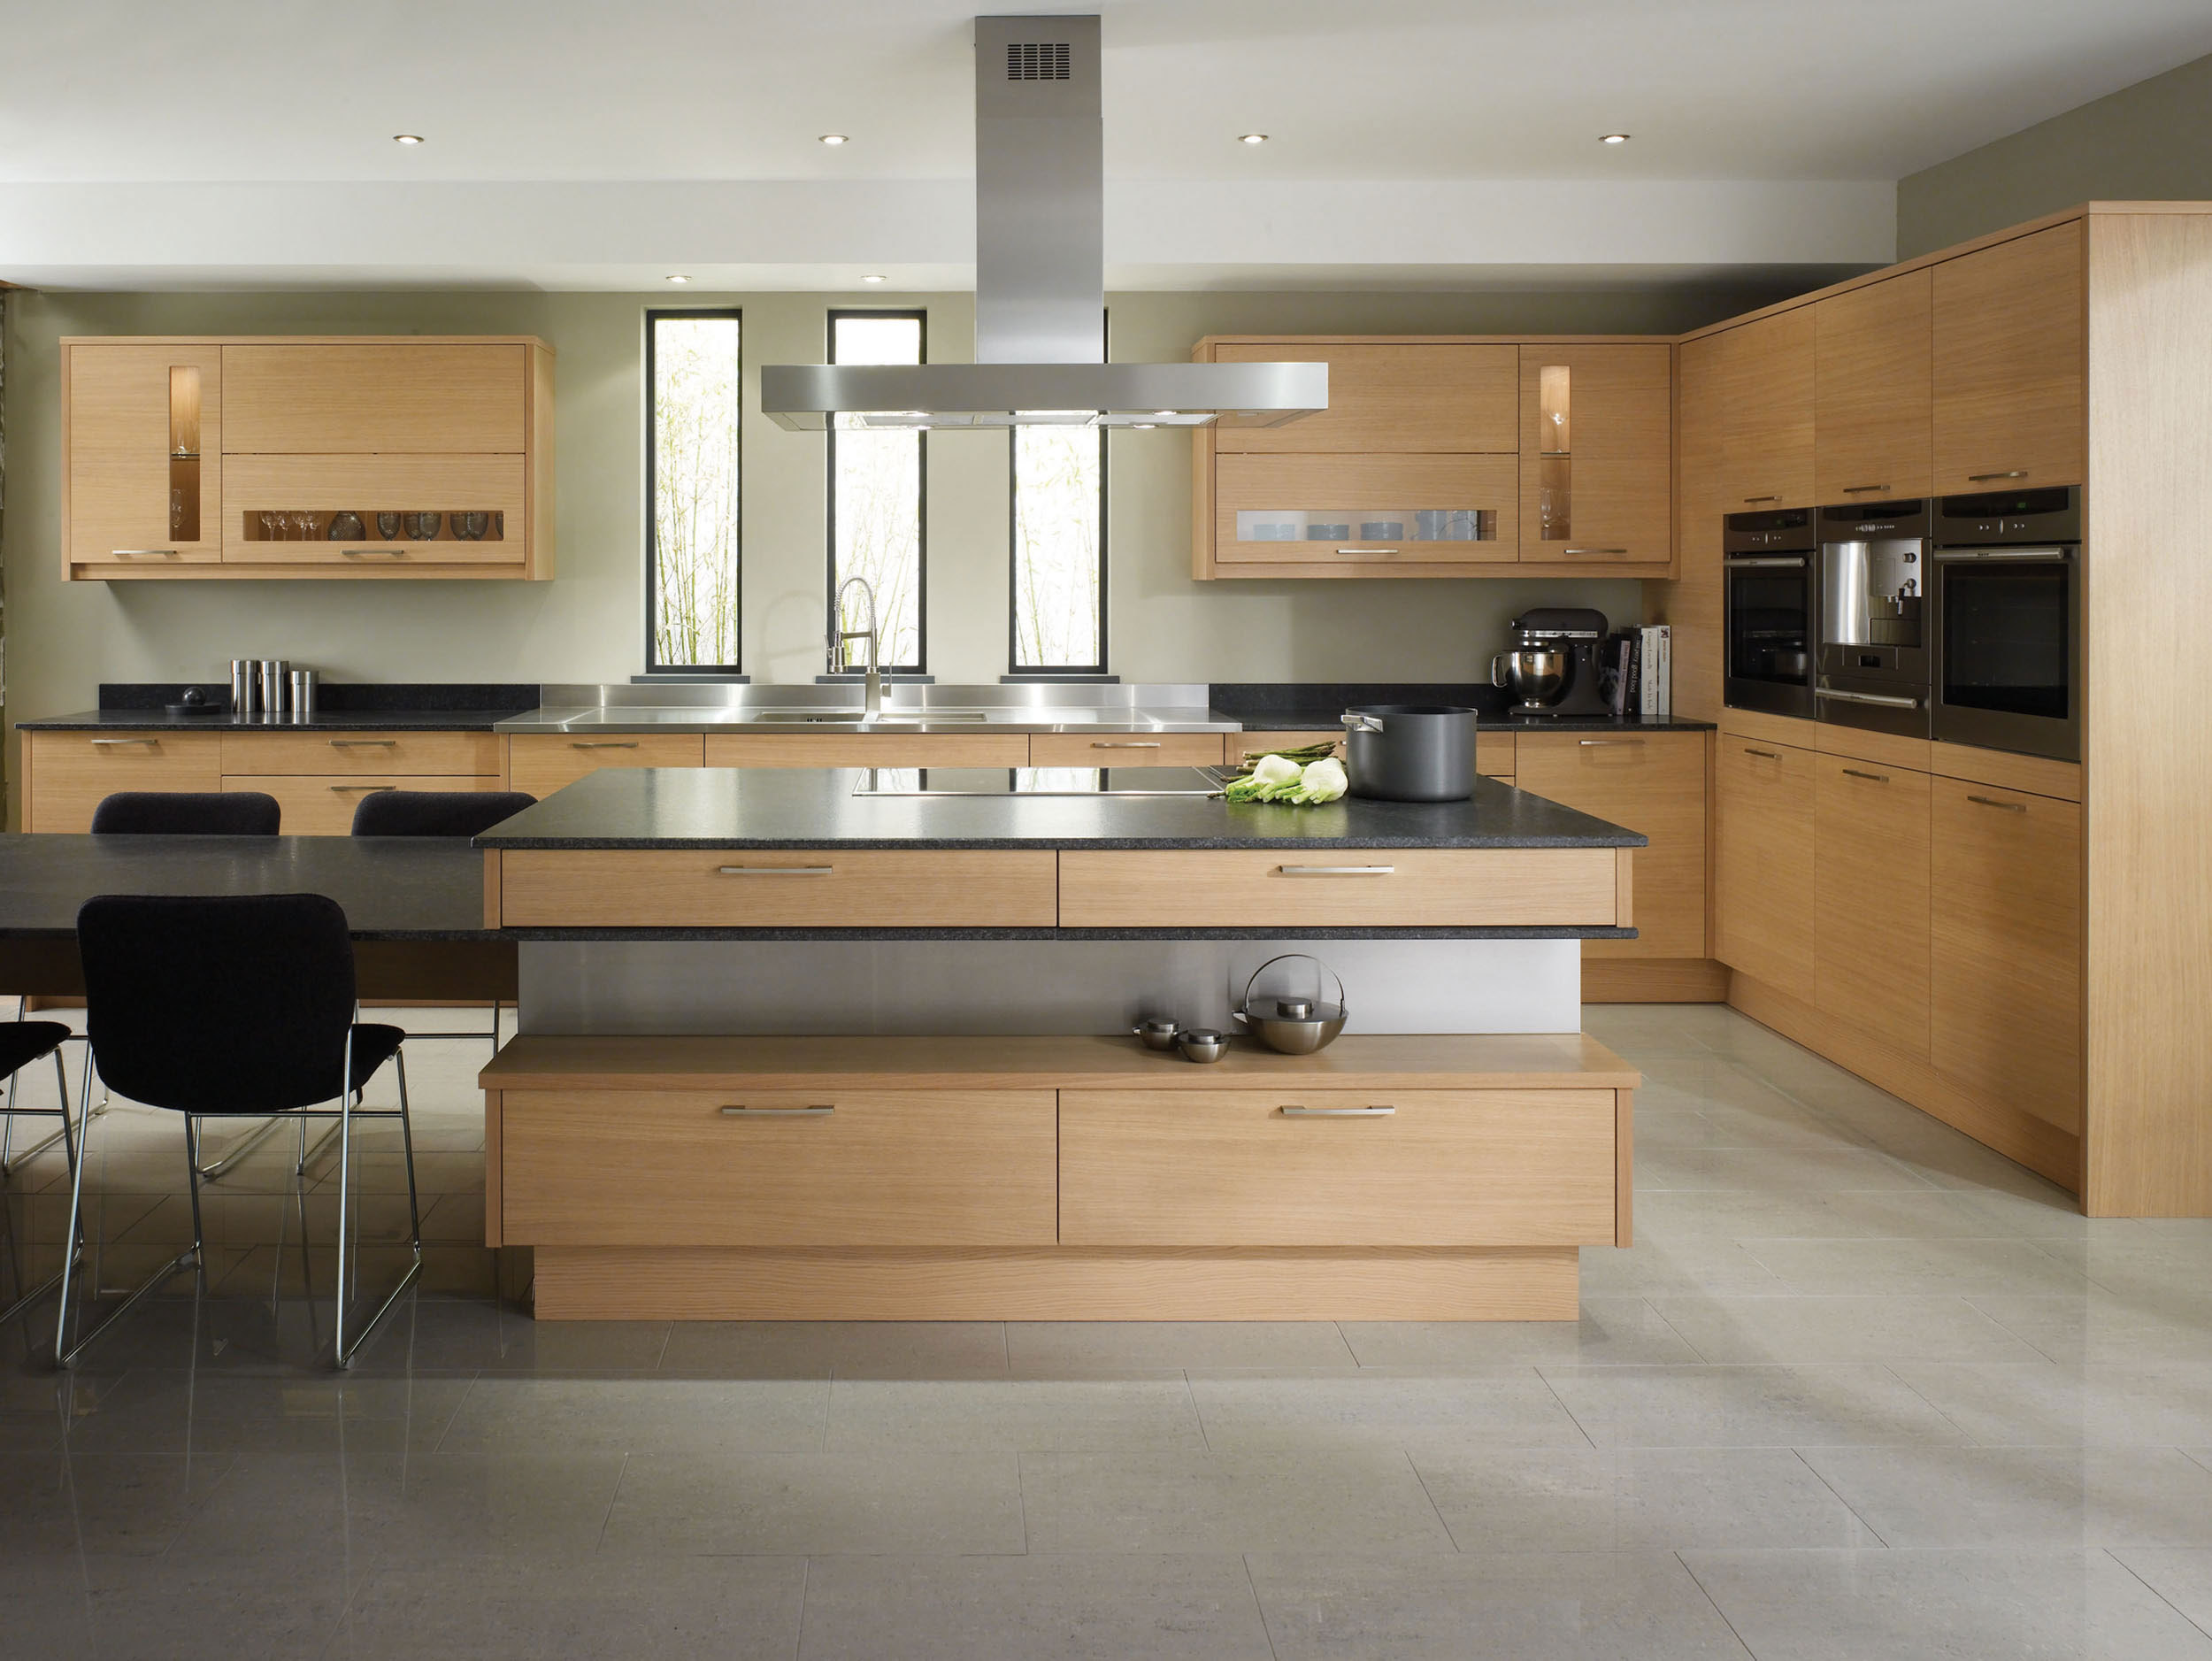 contemporary-ideas-for-above-kitchen-cabinets-kcn481